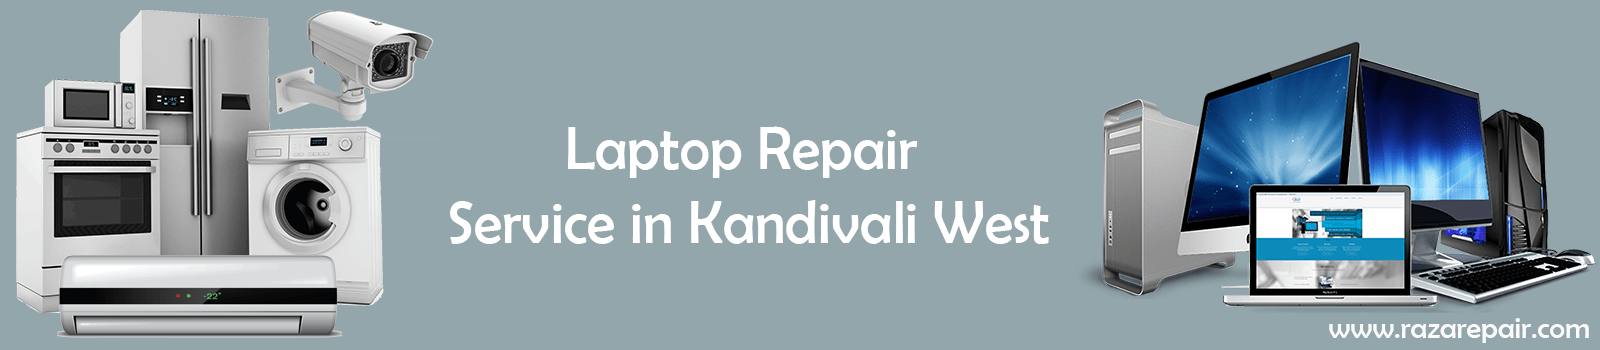 Laptop Repair Service in Kandivali West | Call Now 8655112626